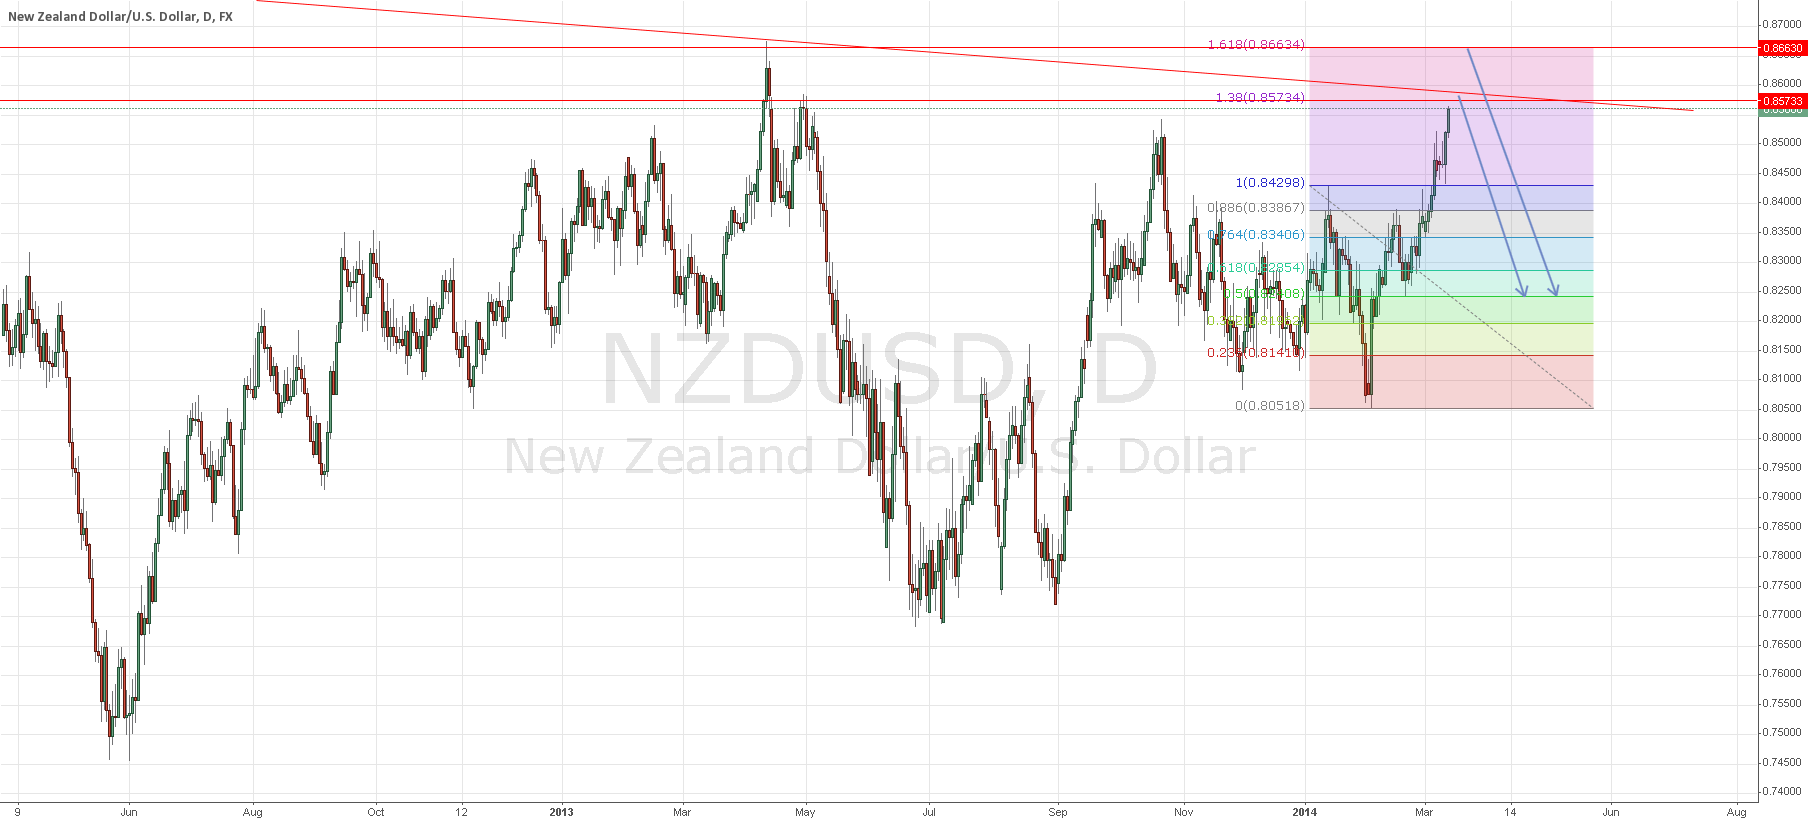 Short NZD/USD between 138 and 161.8 fib levels